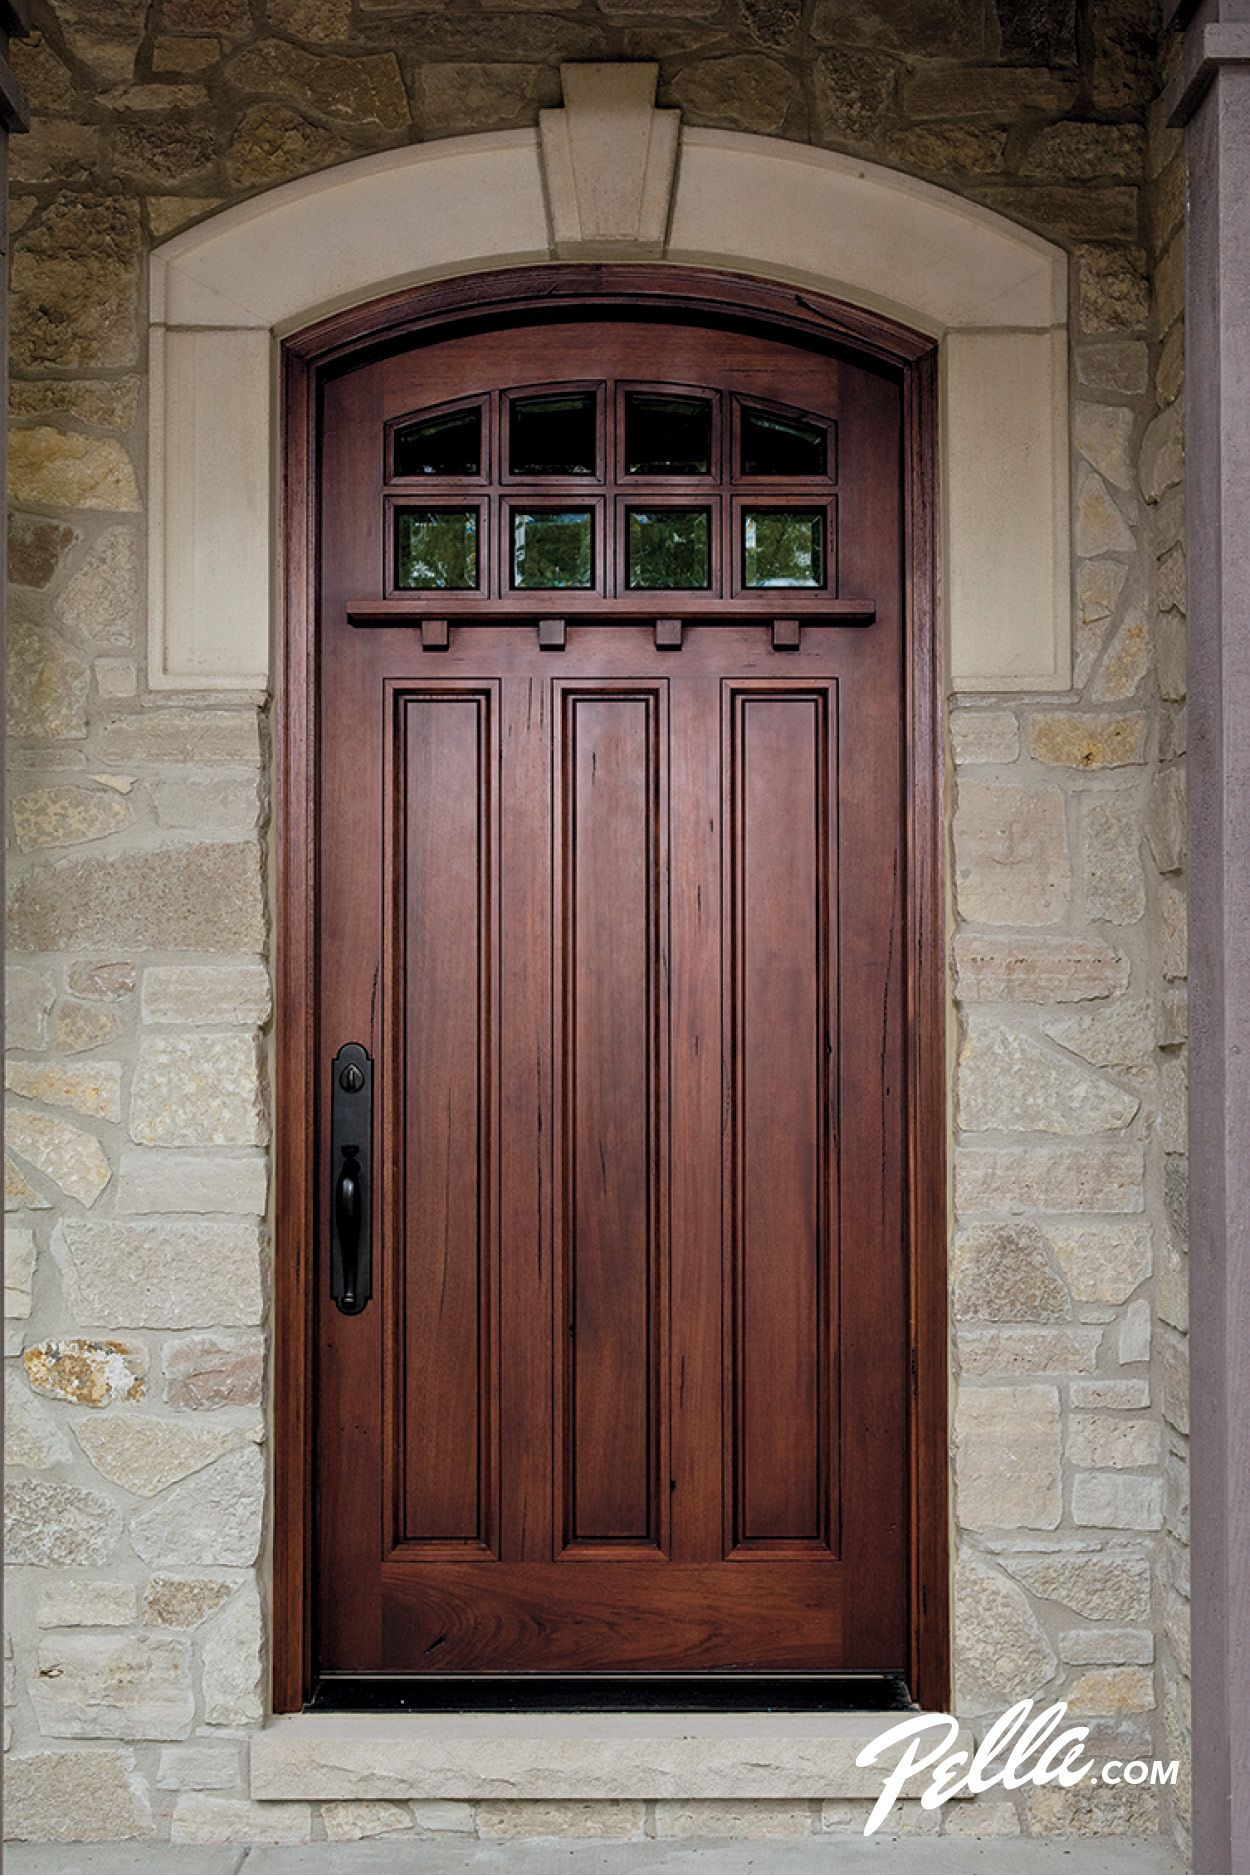 Available In Mahogany Rustic Walnut Or American White Oak The Pella Architect Series Features Four Distinct Wood Entry Door Collections To Choose From